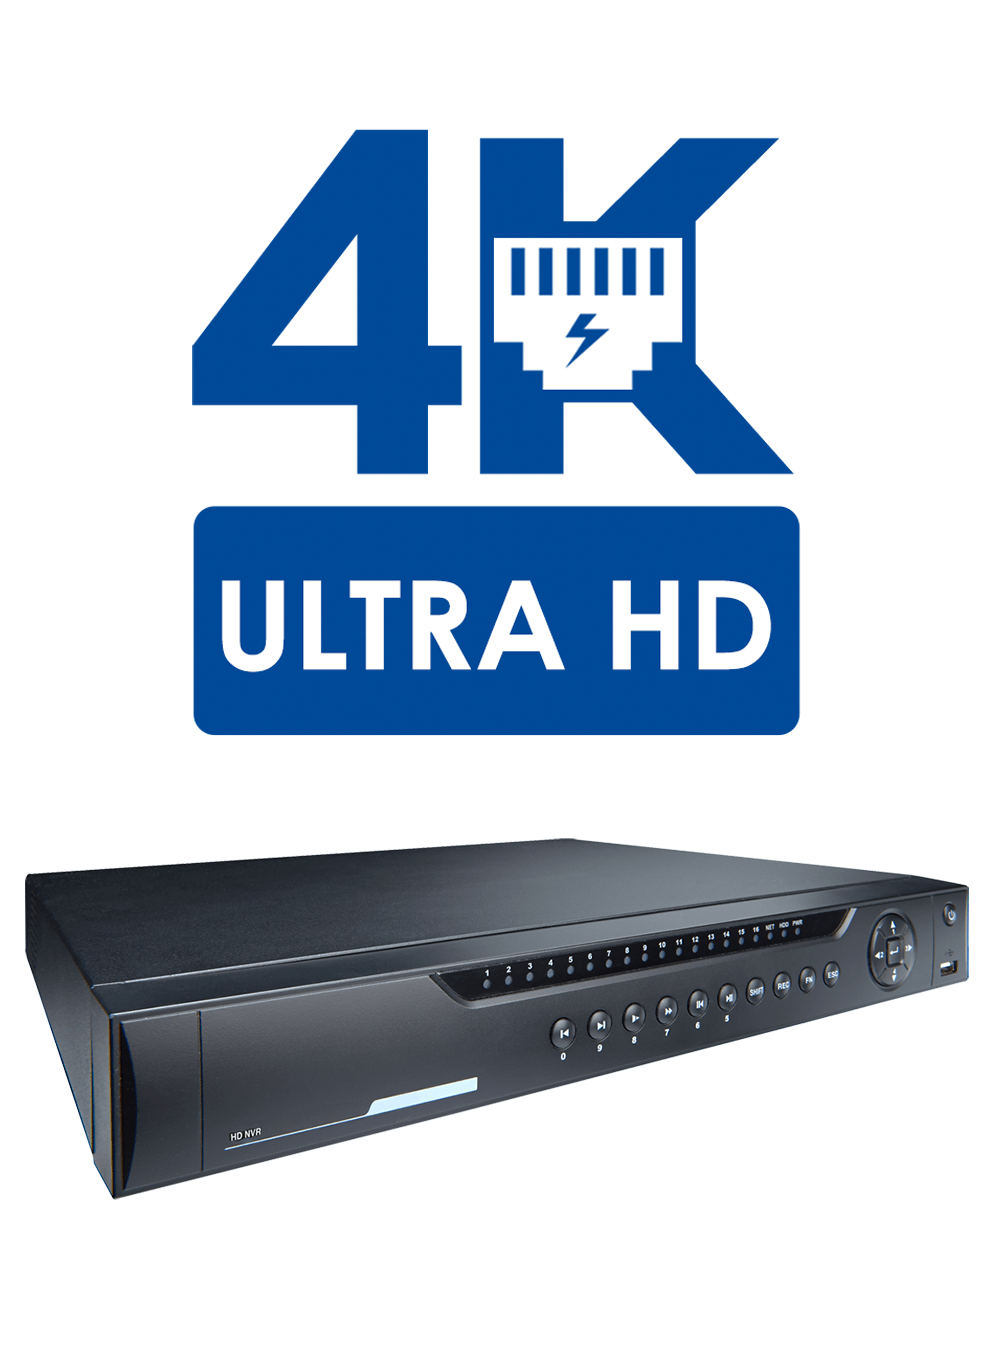 Powerful HD recording and 4K capability